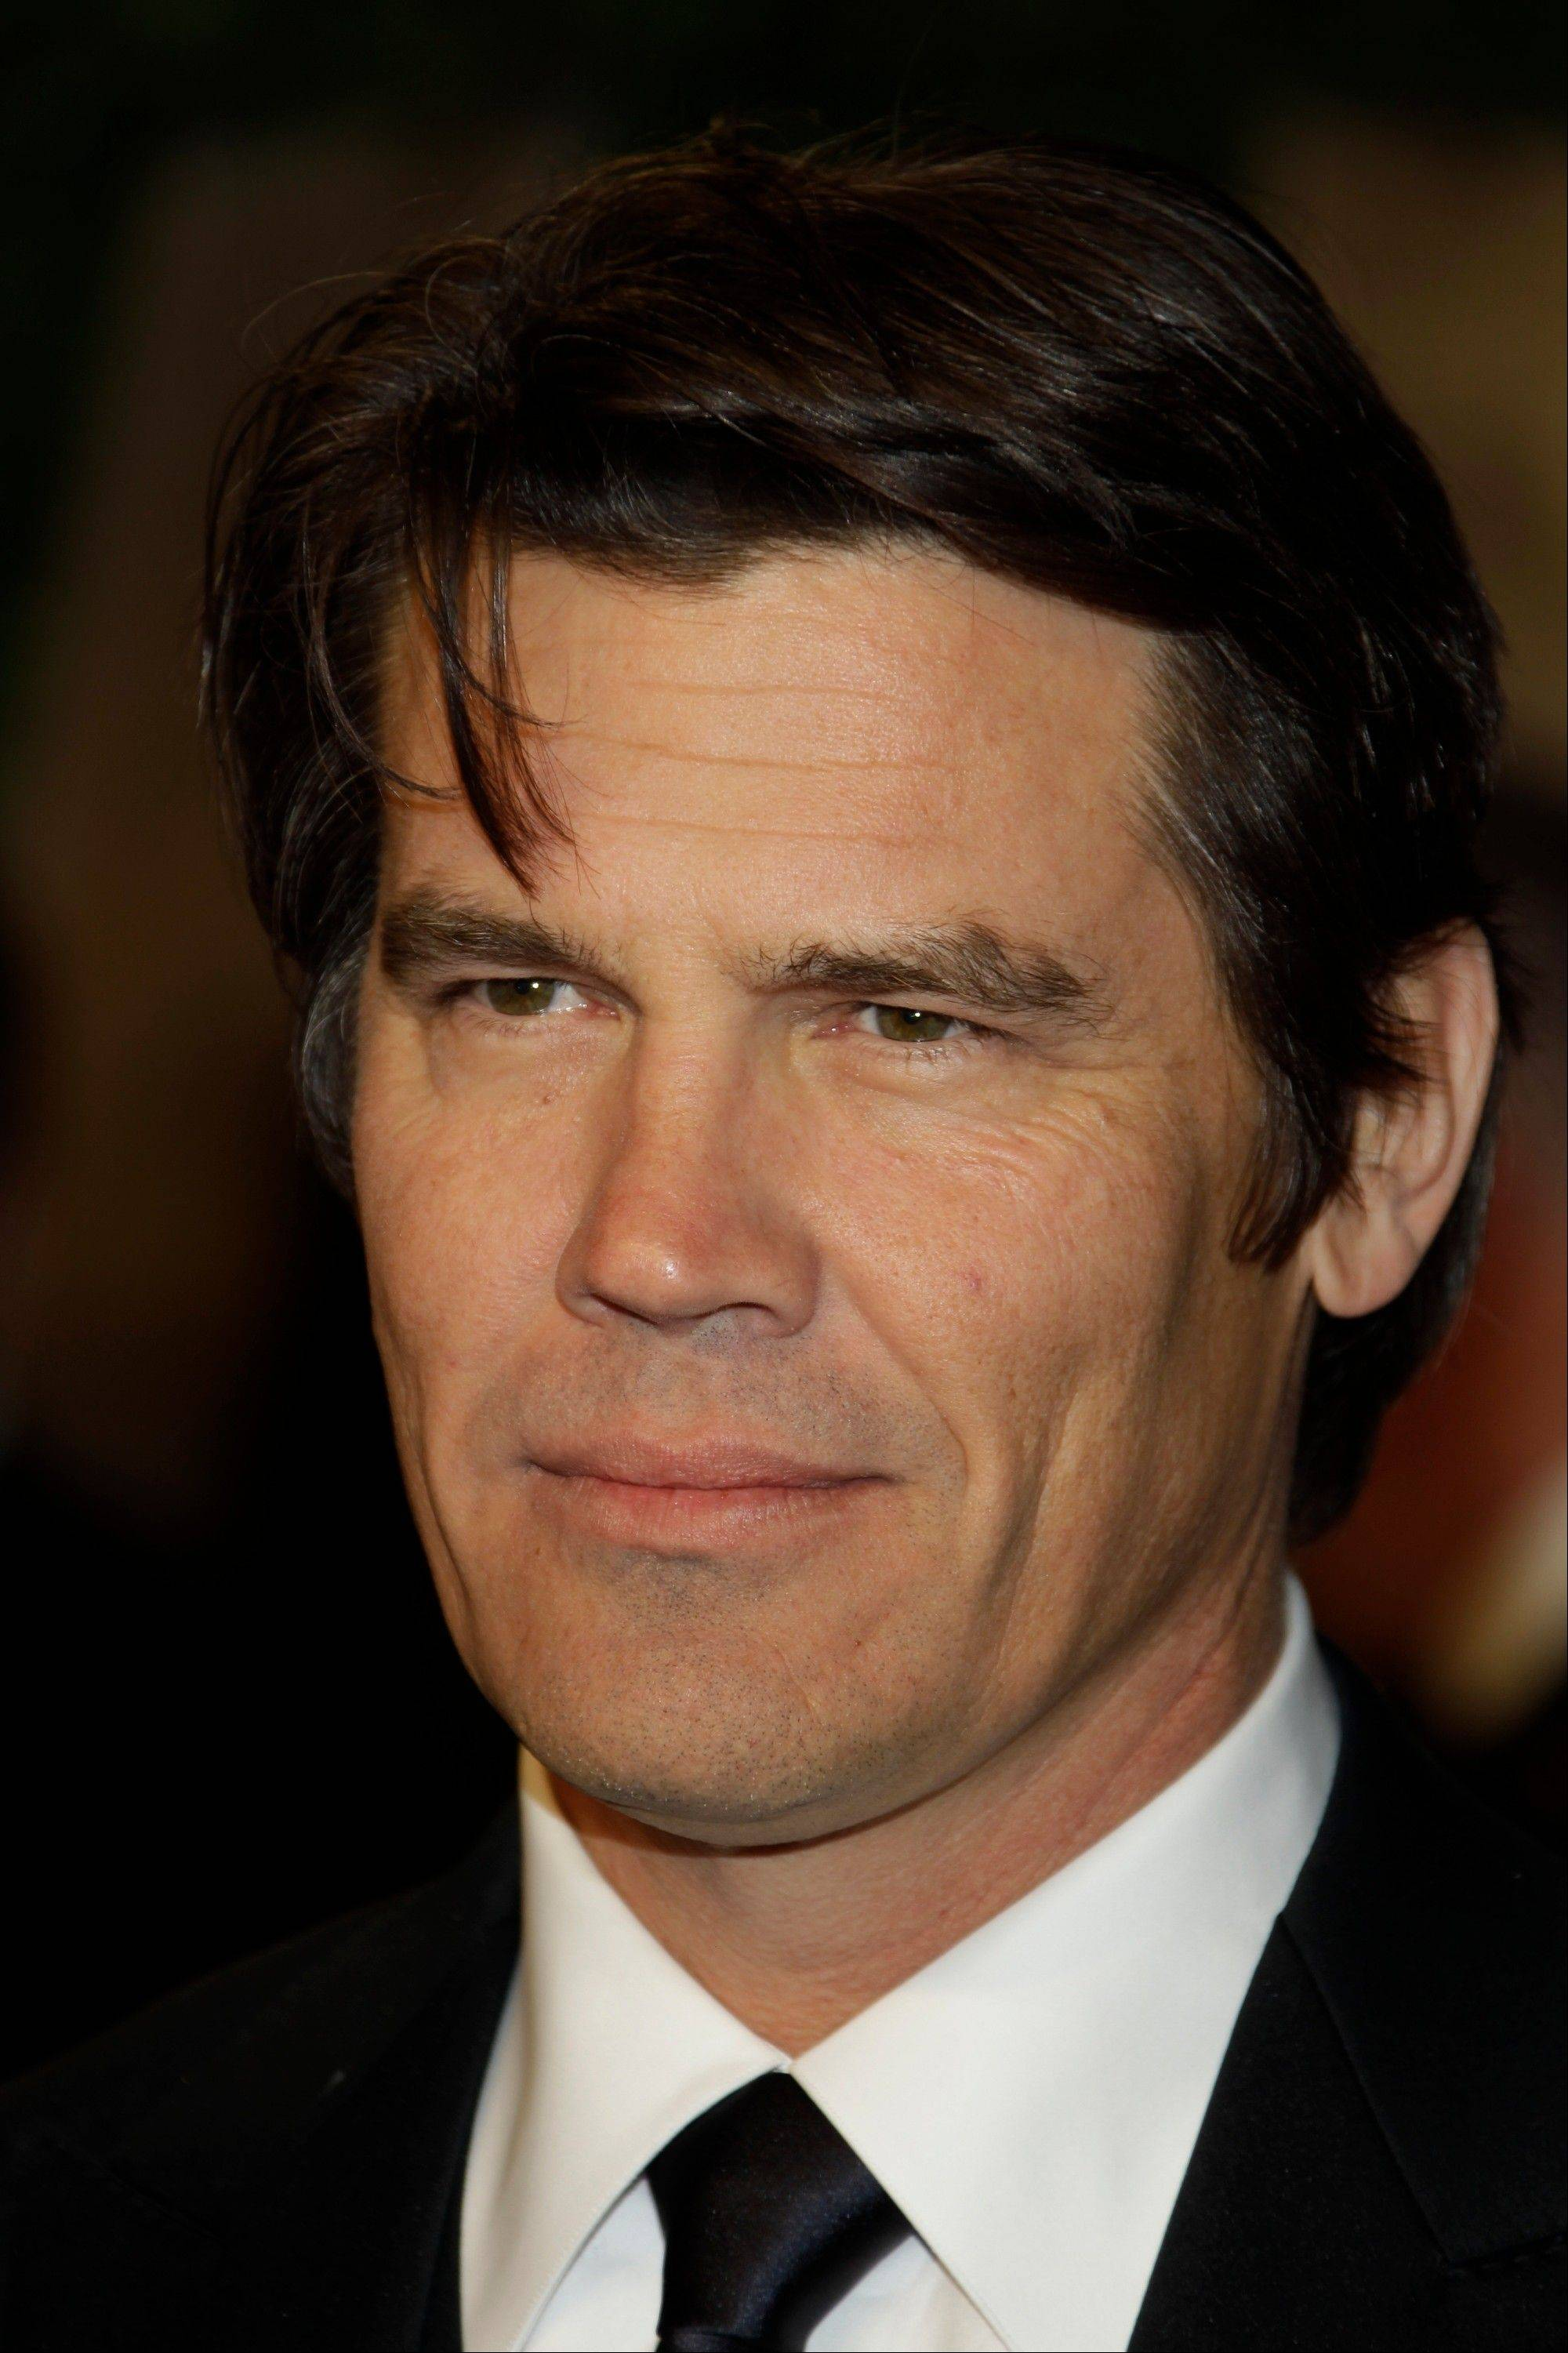 Josh Brolin spent some time New Year's Day and the following morning in a Southern California jail cell after getting arrested on charges of misdemeanor public intoxication.